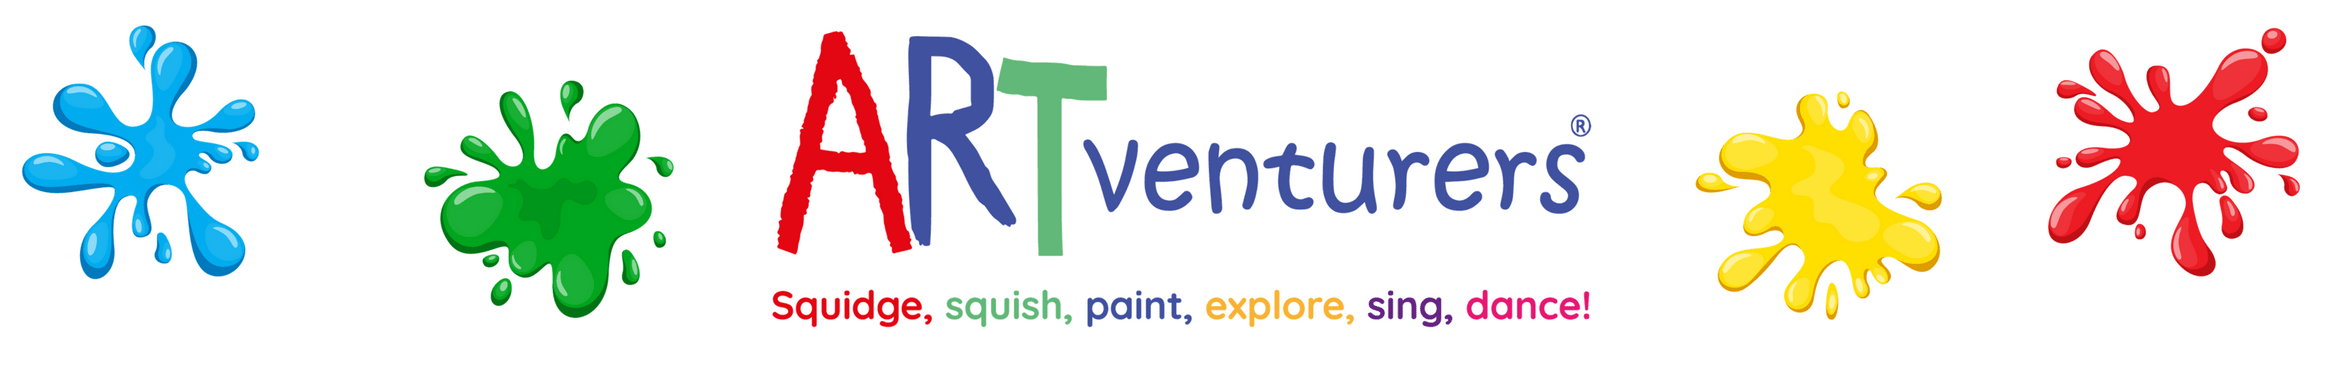 ARTventurers Stockport